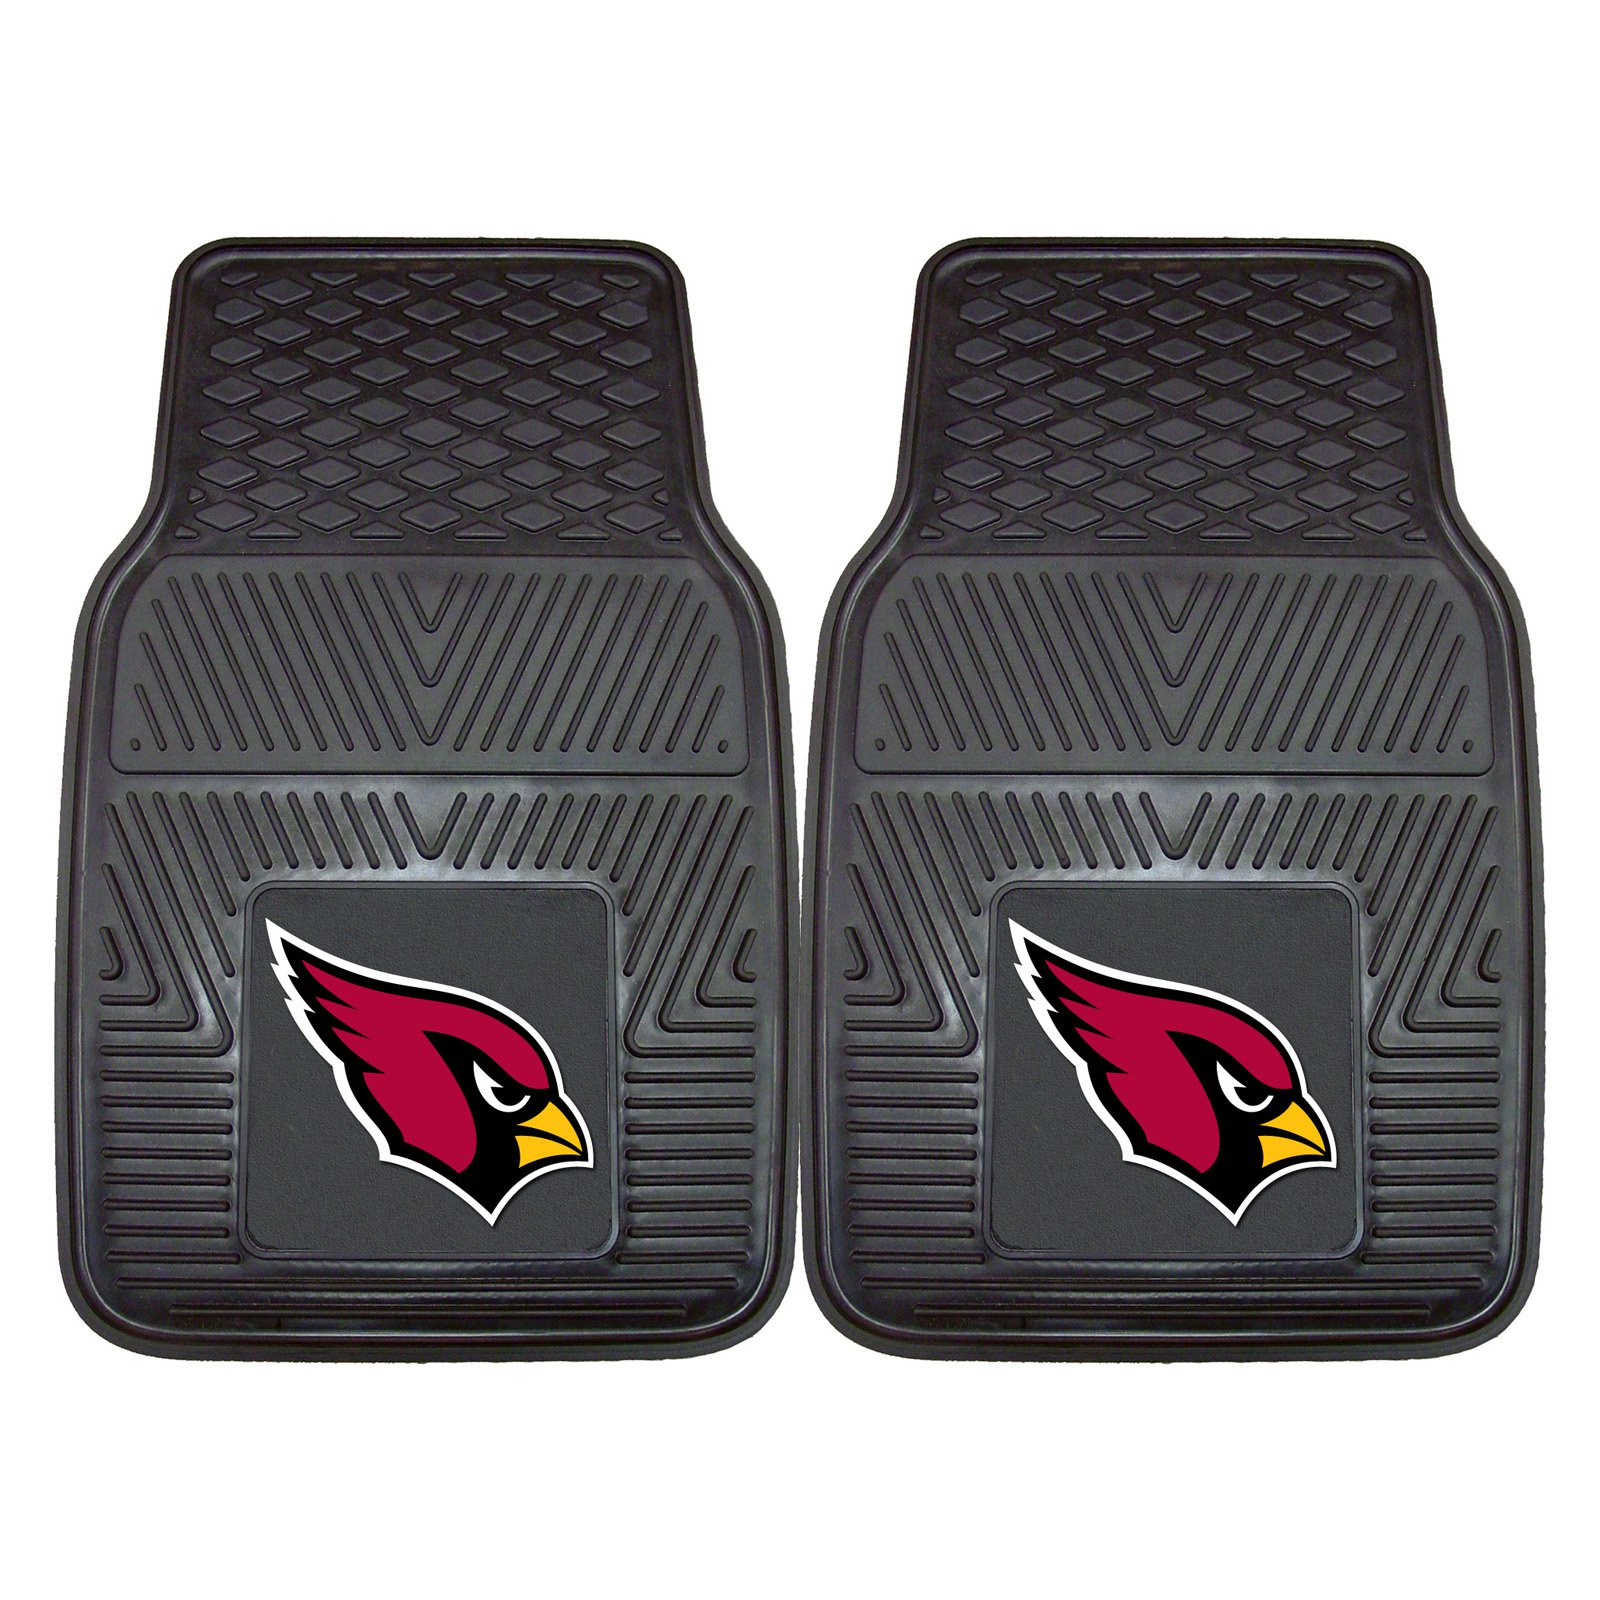 "Arizona Cardinals 2-pc Vinyl Car Mats 17""x27"" by Fan Mats"